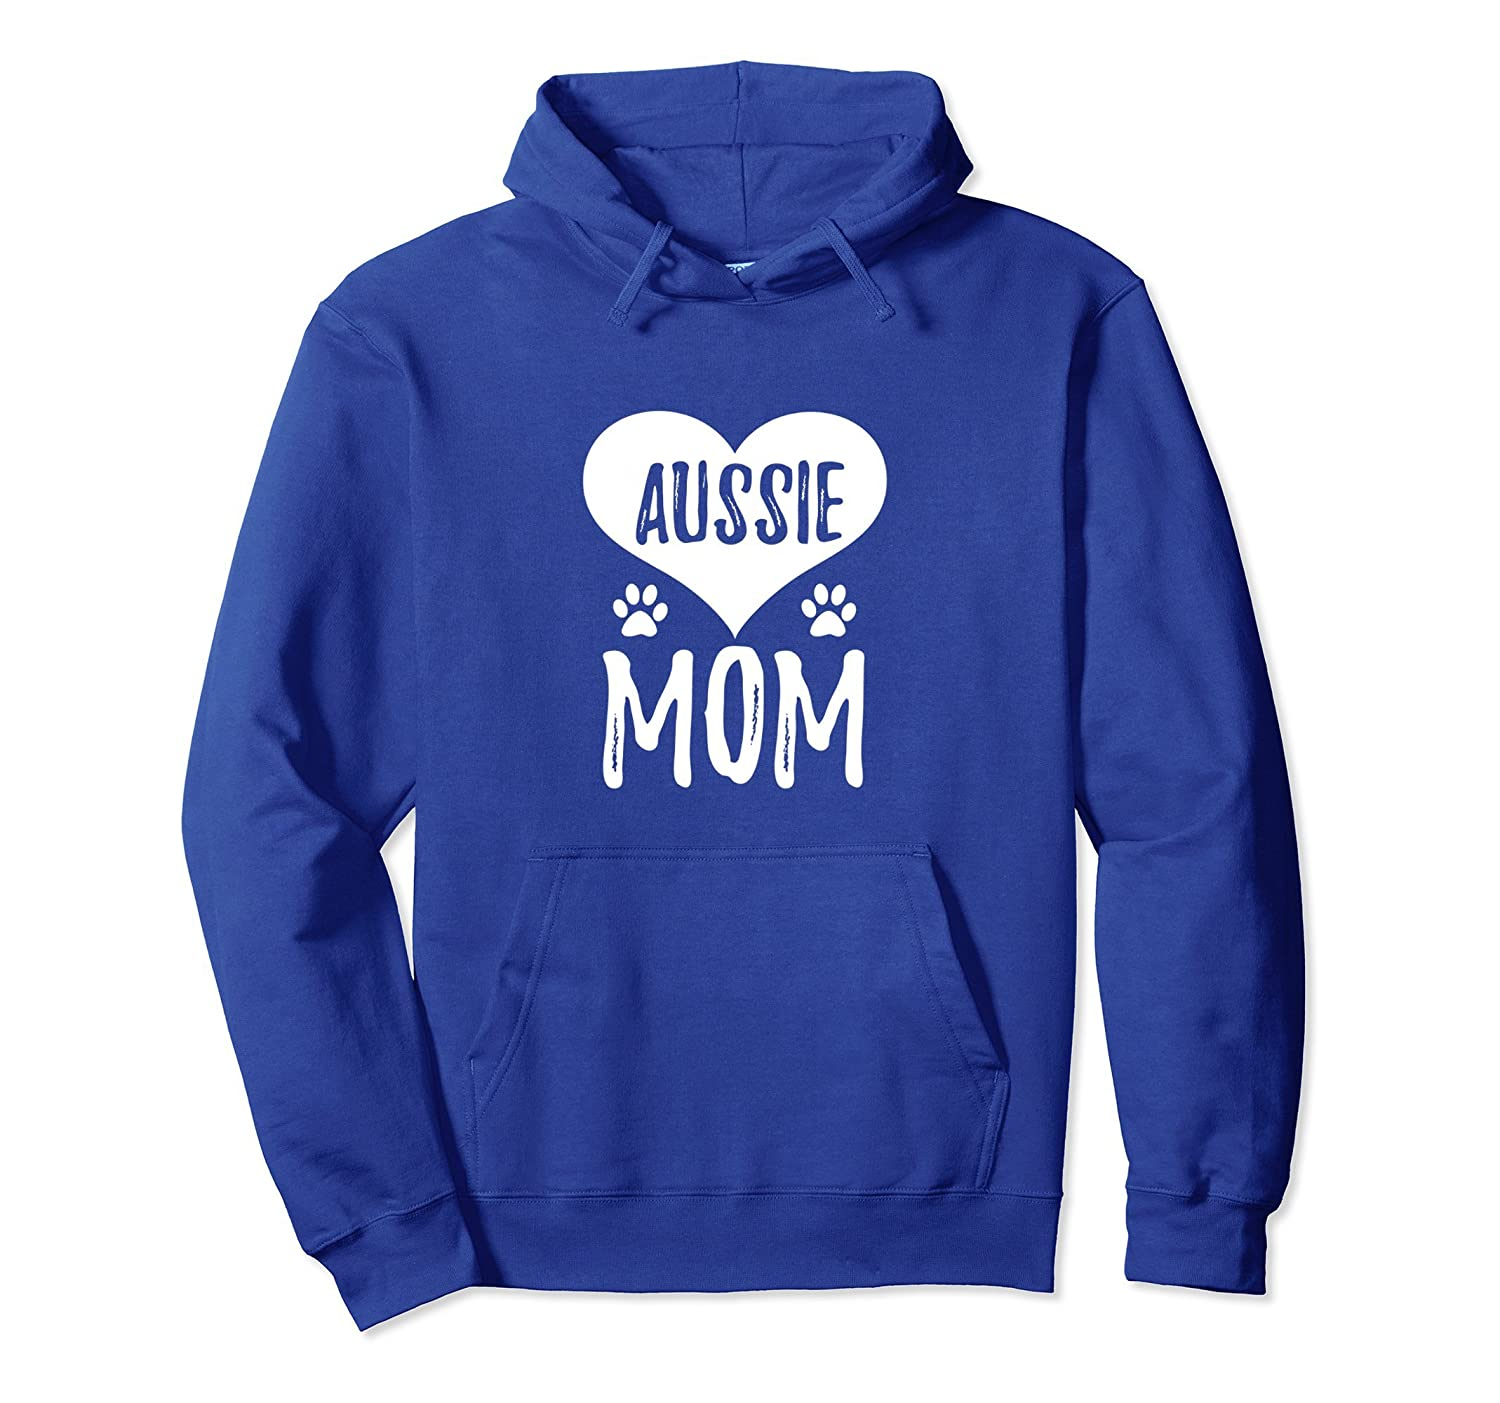 Aussie Mom Hoodie for Aussie Shepherd Dog Mom-AZP